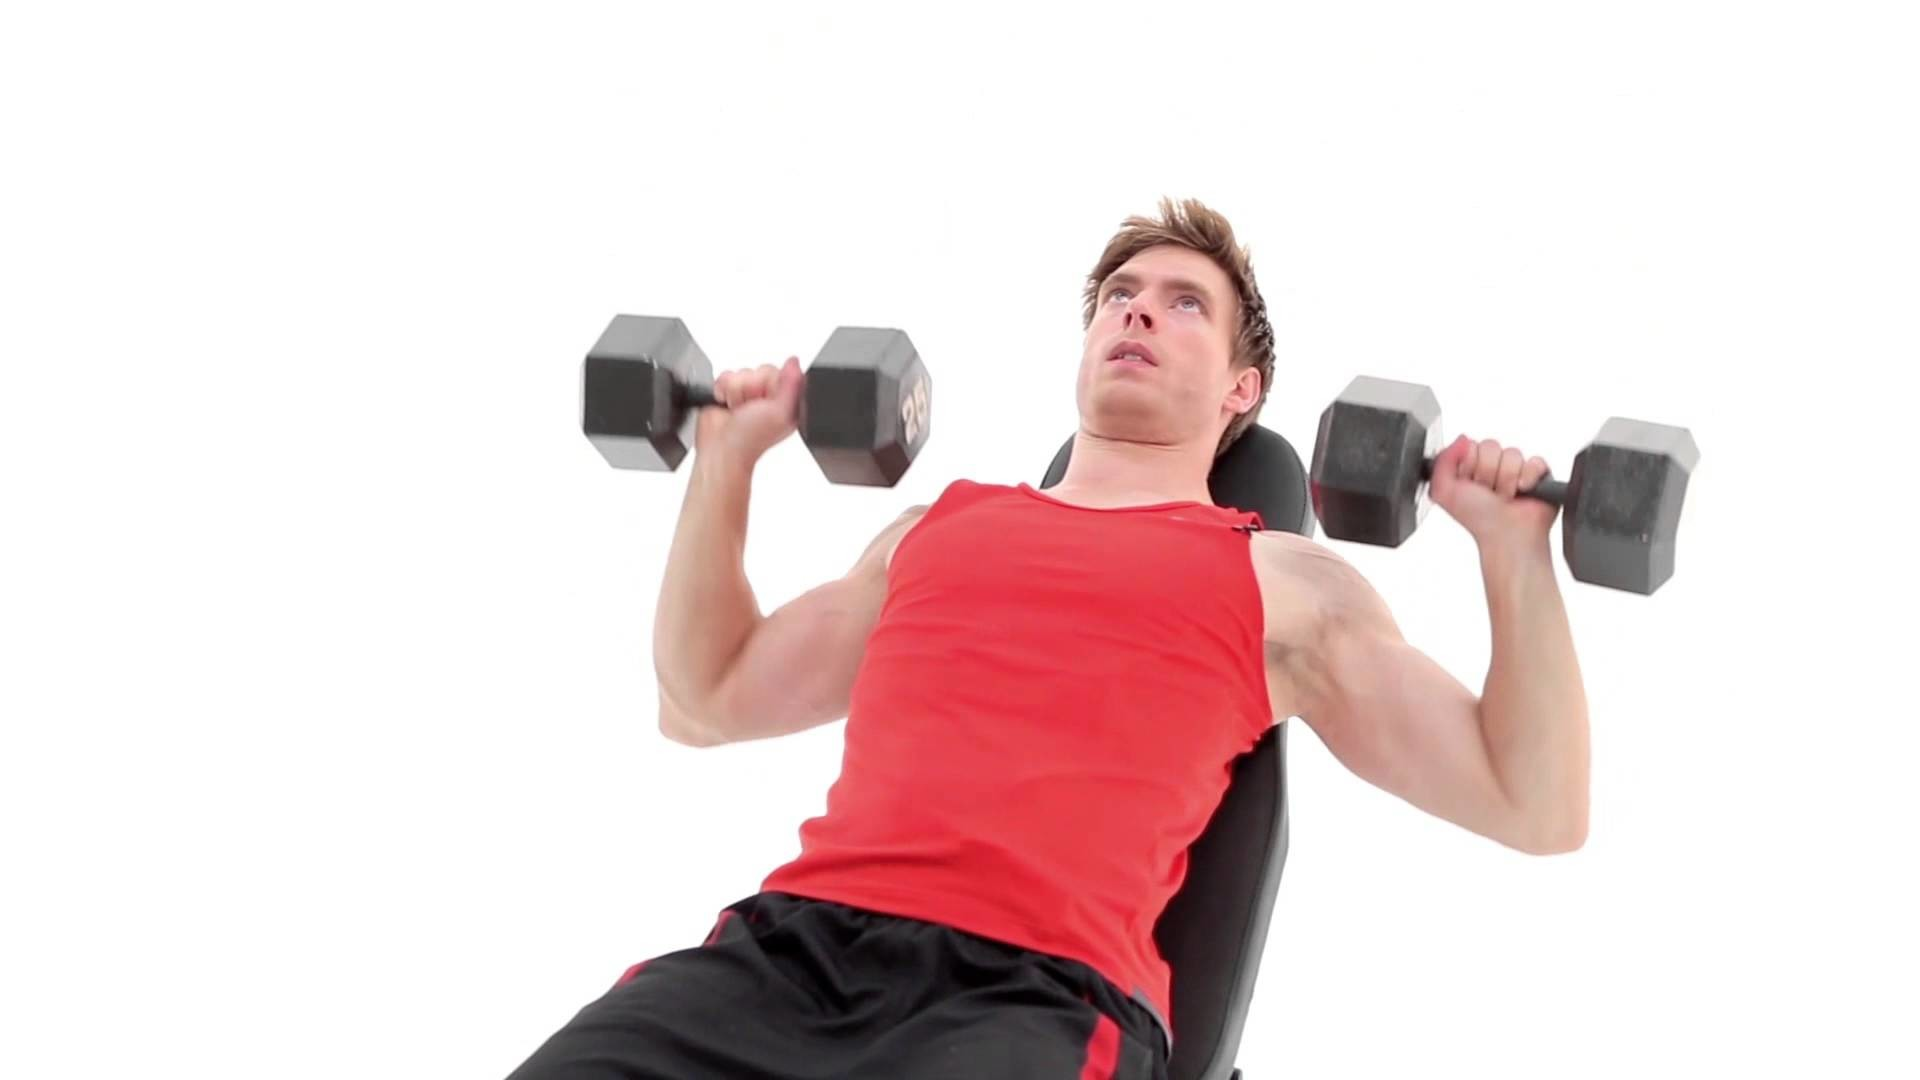 Gallery images and information: Olympic Weightlifting Wallpaper